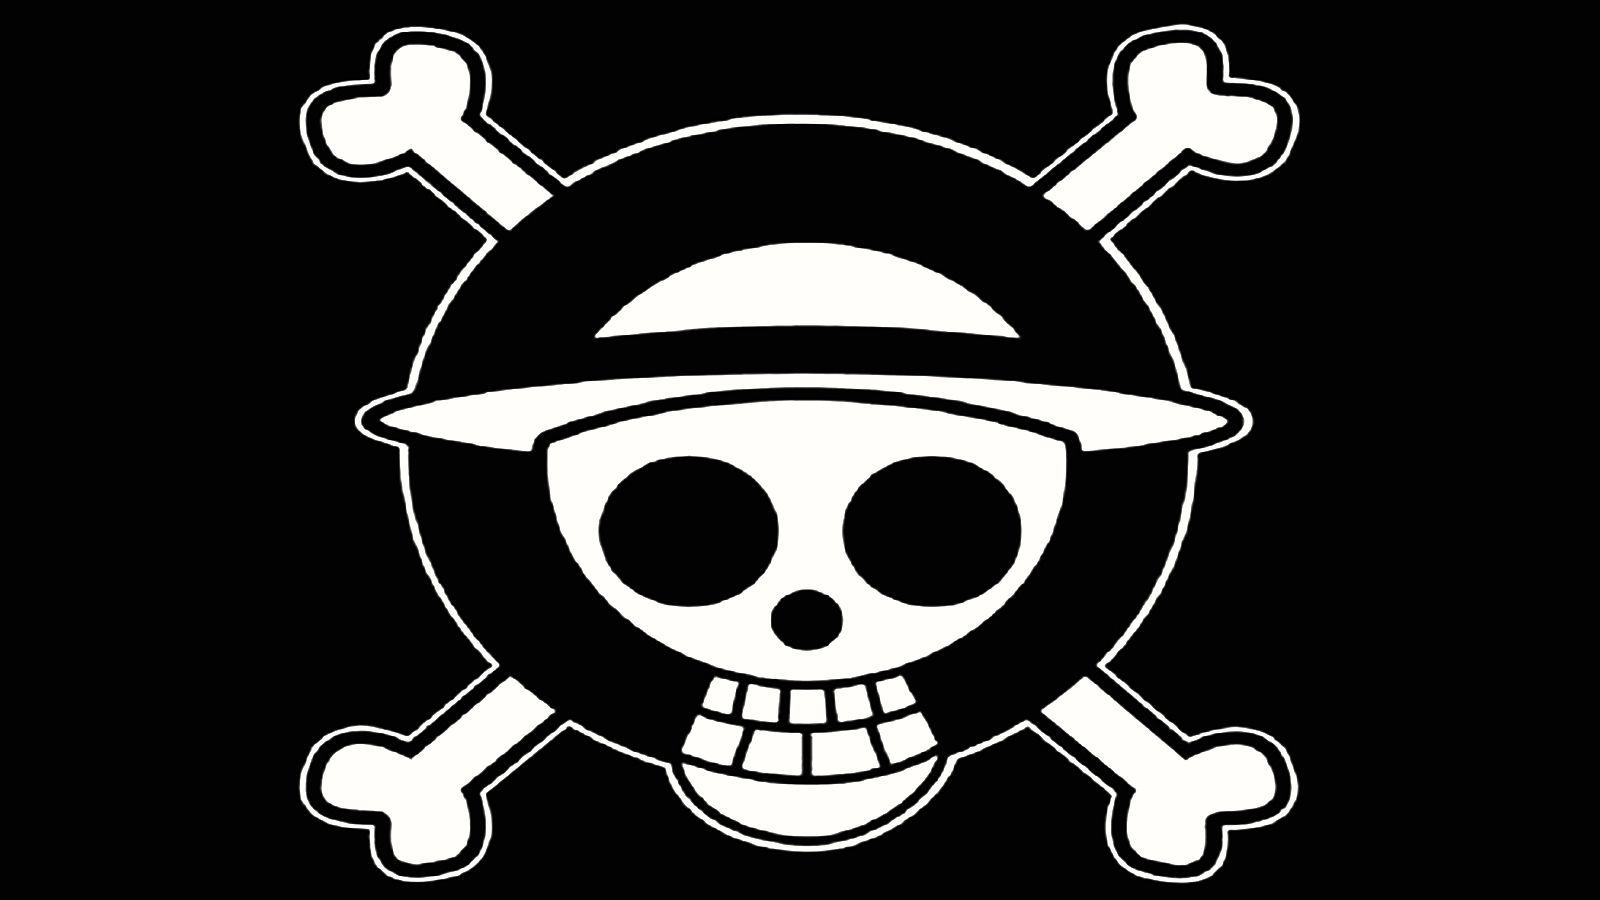 Luffy Pirate Flag Wallpaper About Flag Collections